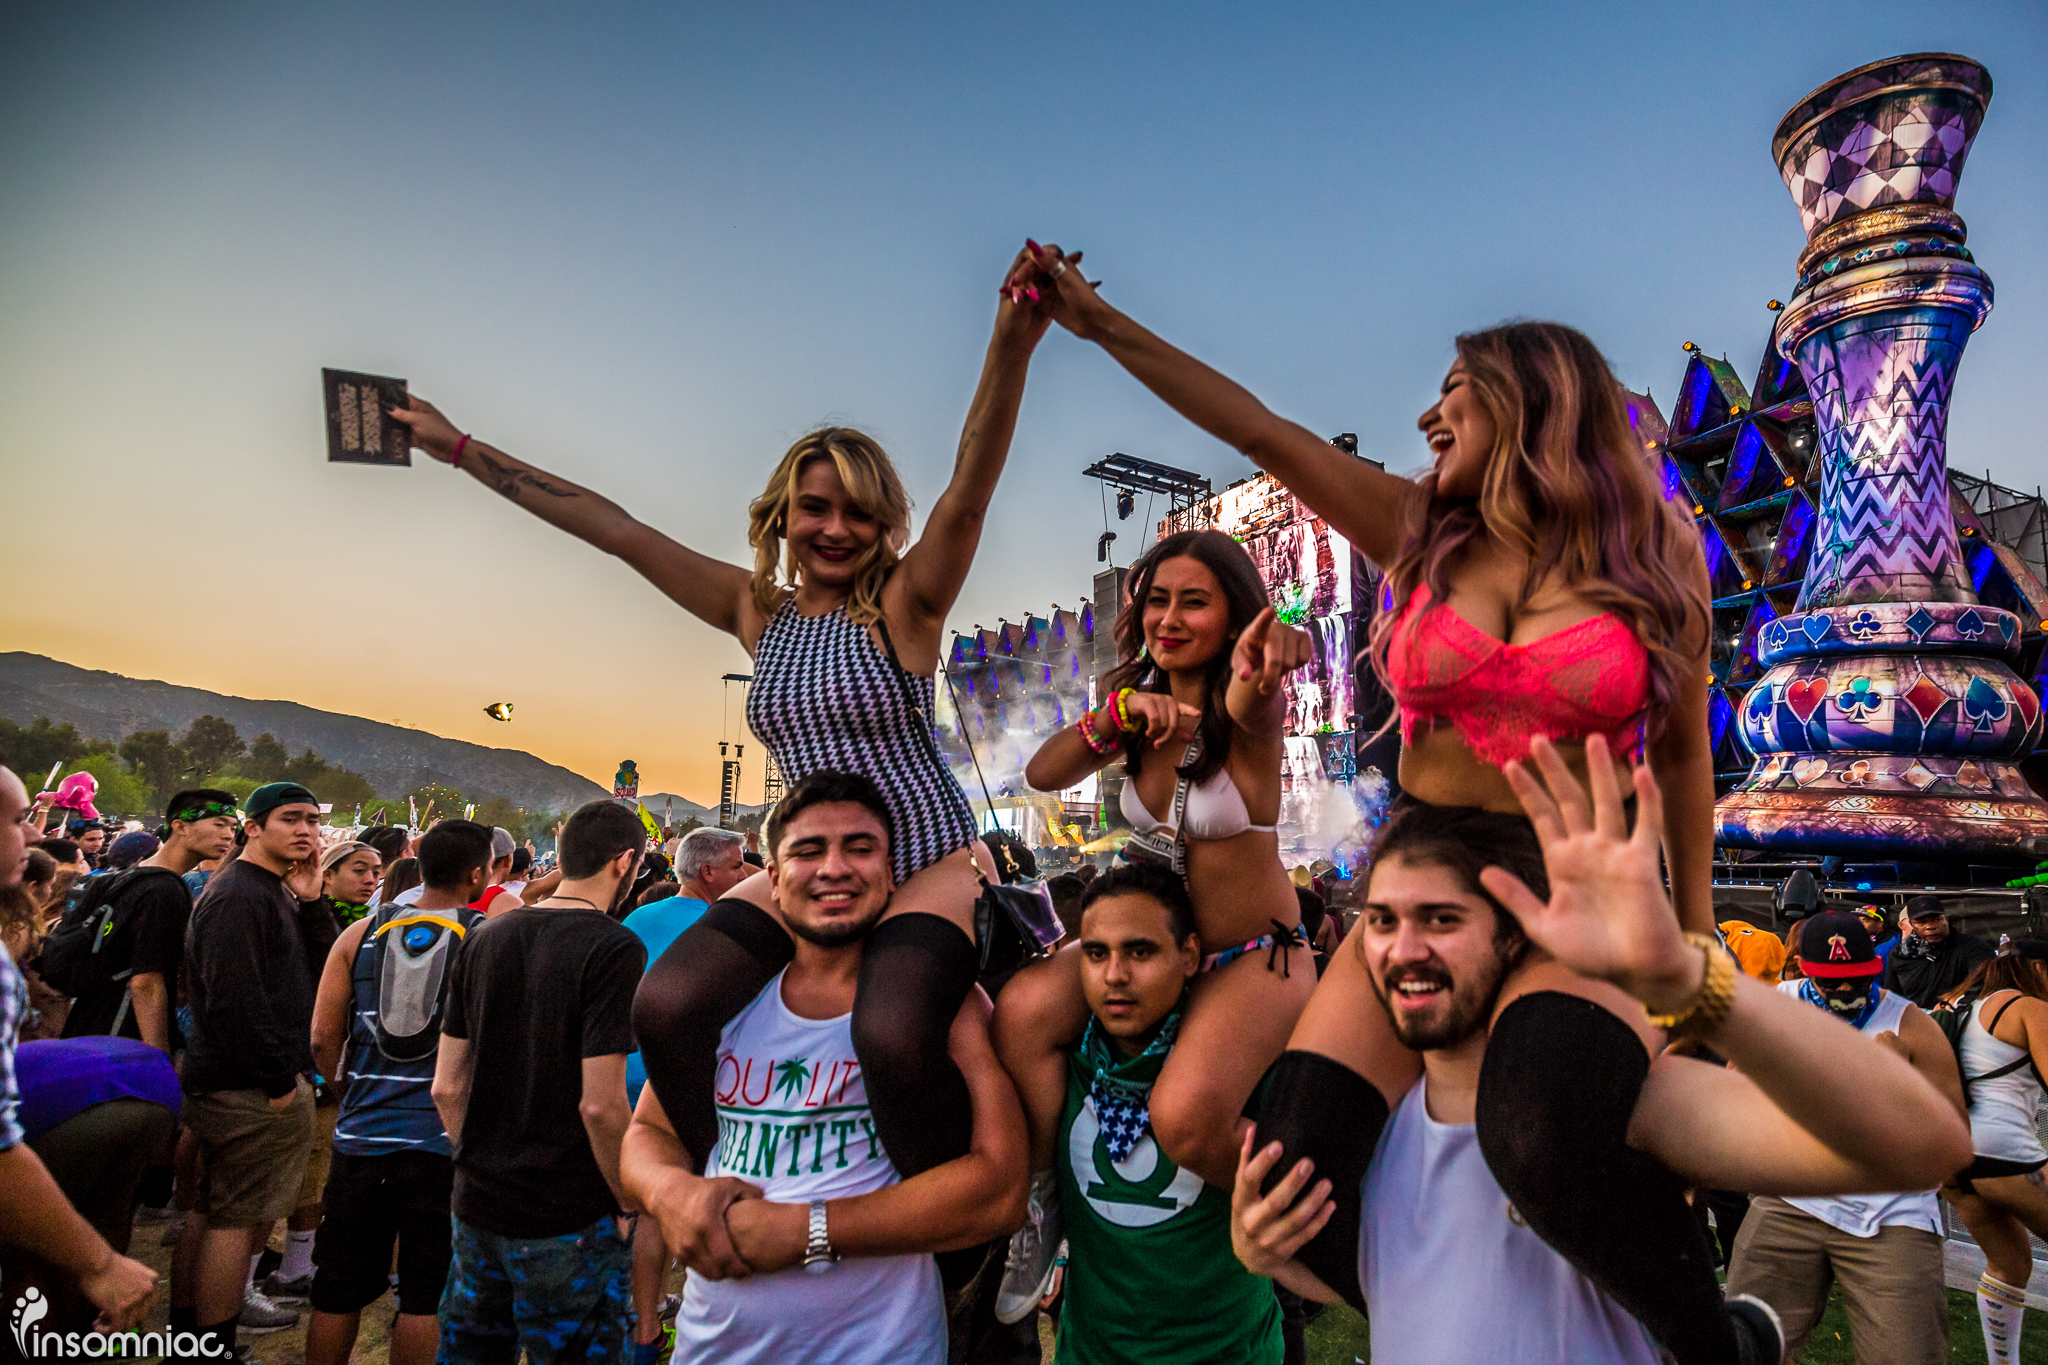 nocturnal_2015_iwally_alivecoverage-7.jpg